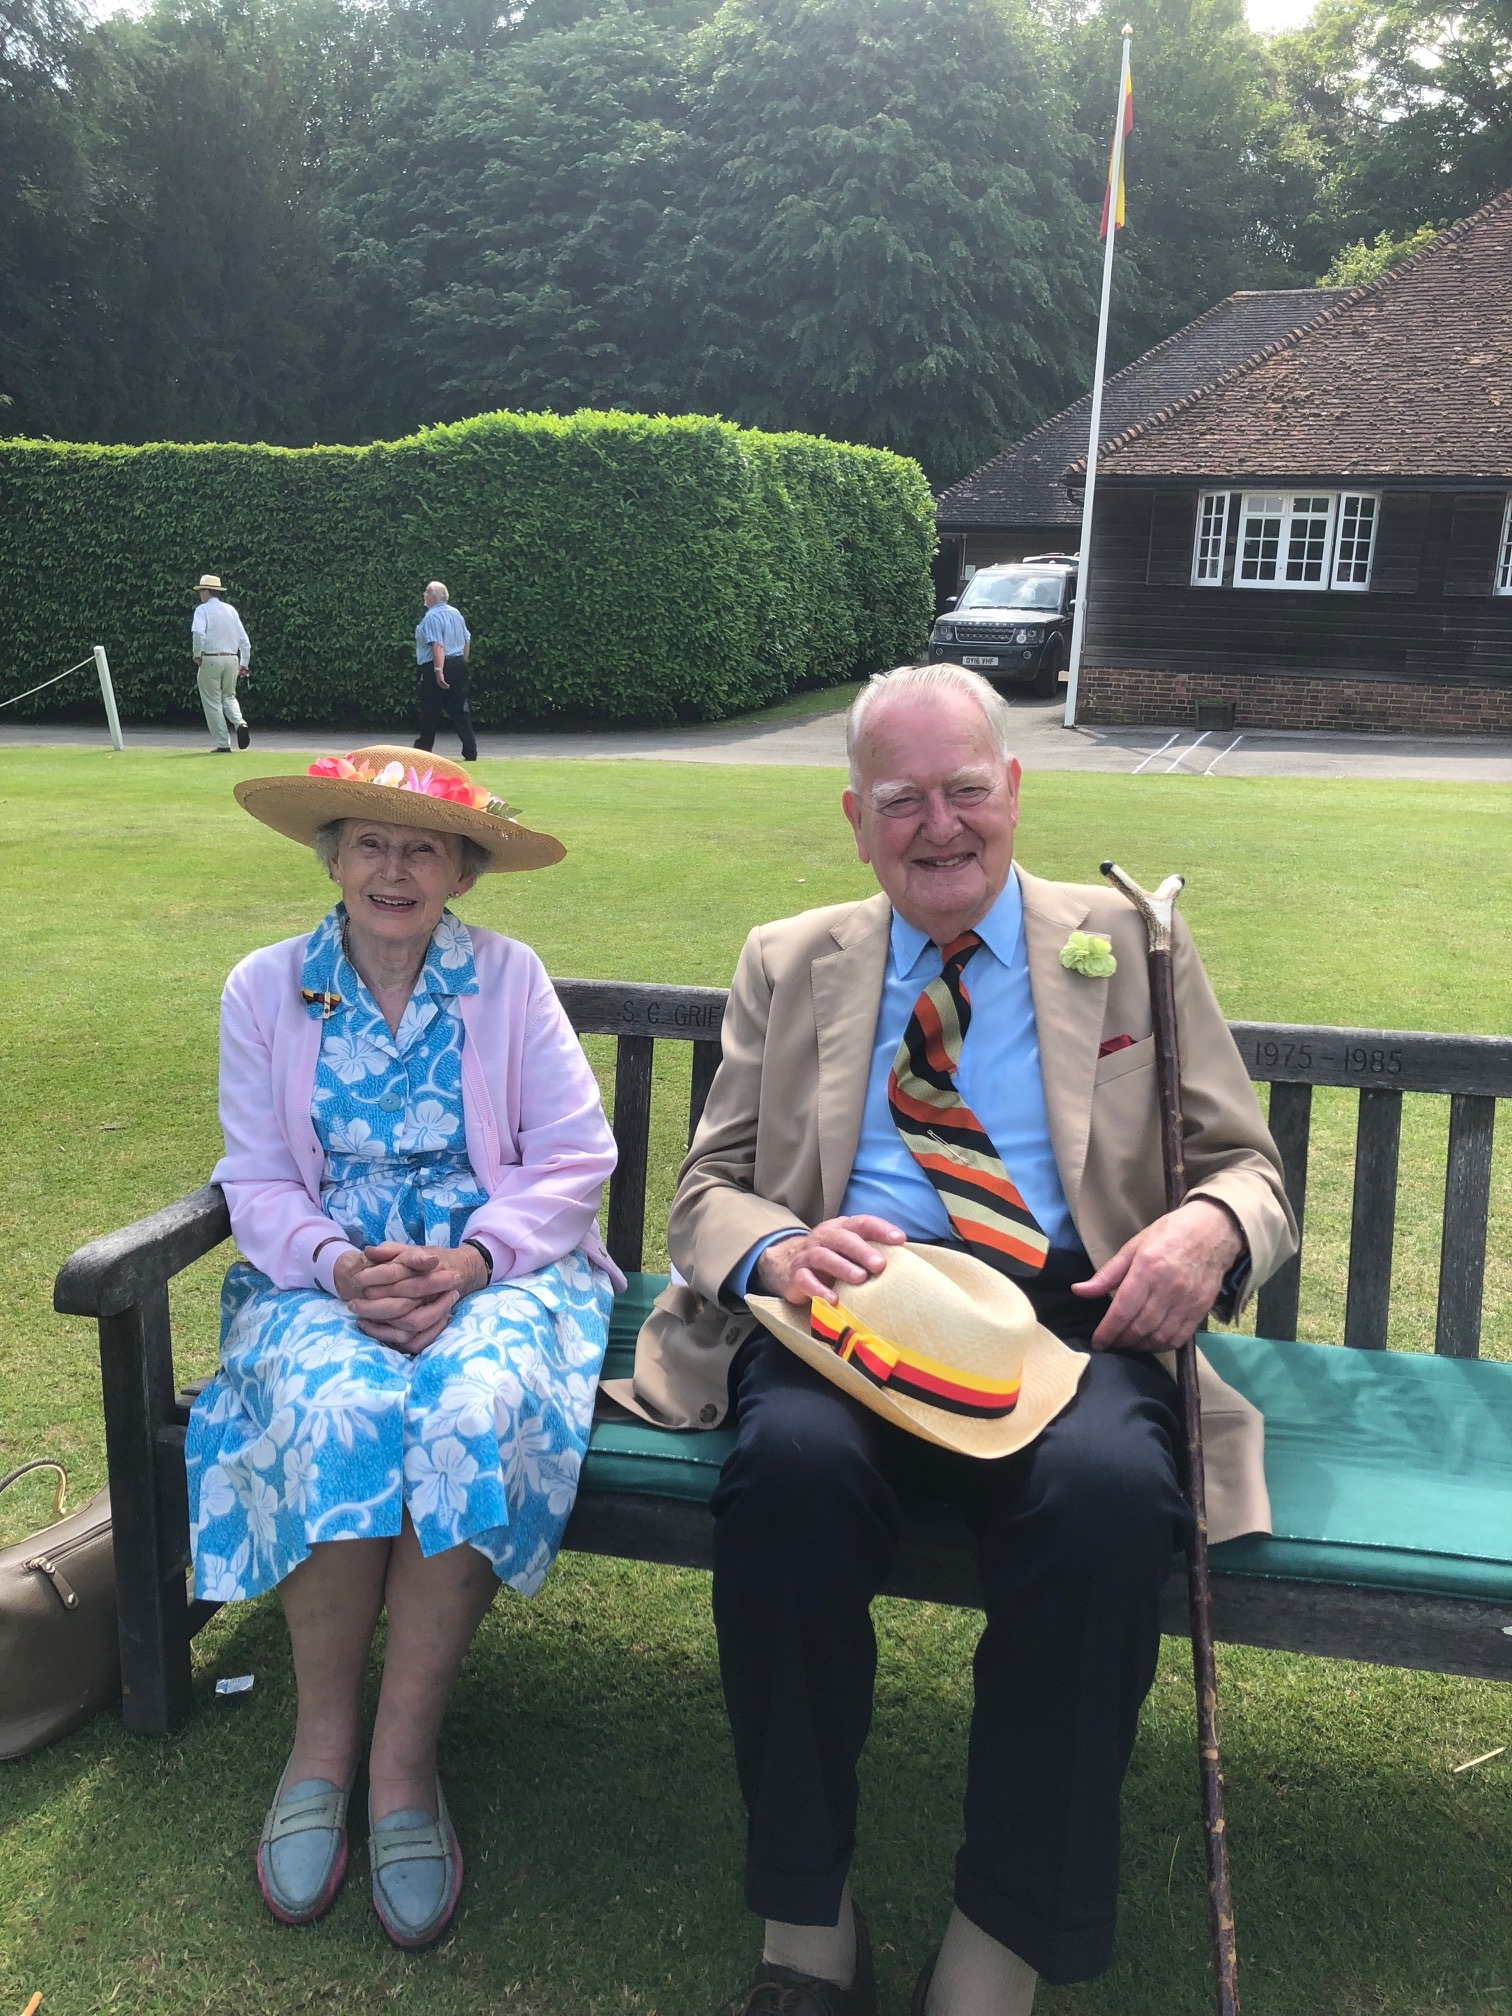 Fiona and Malcolm H, members of I Zingari cricket club (established 1845), watching I Zingari play the Duke of Norfolk's X!, Arundel cricket ground.